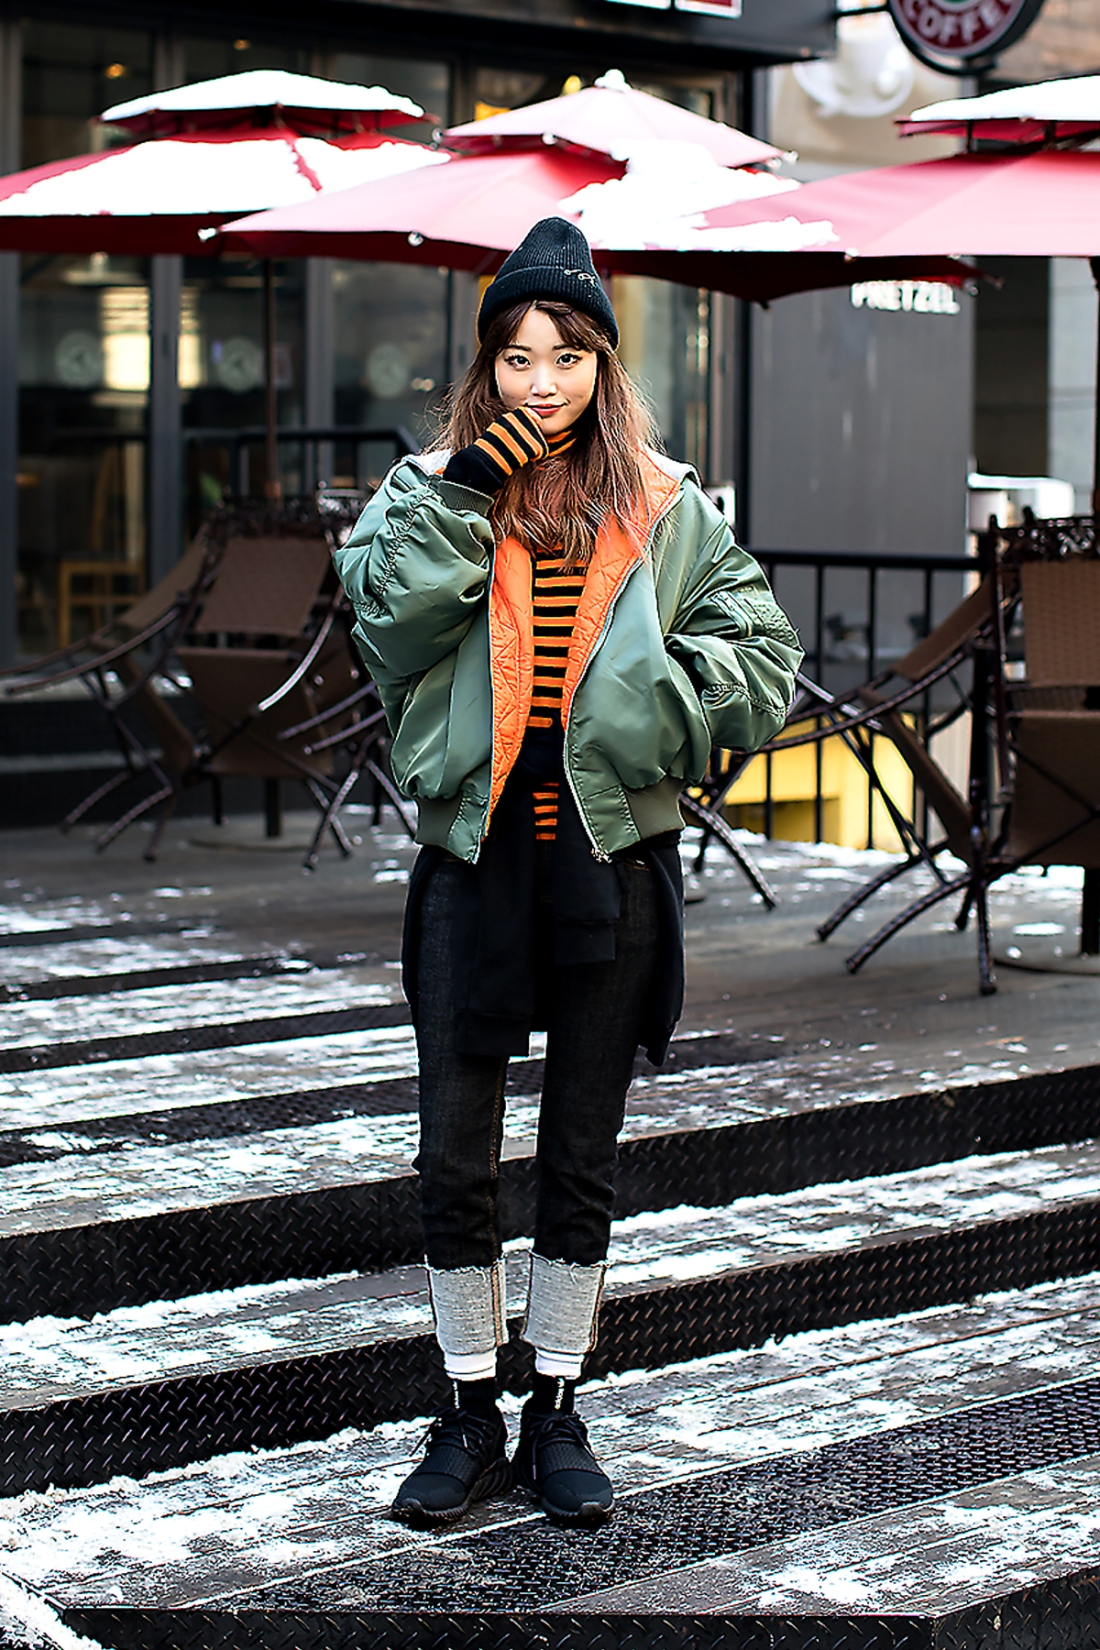 Shin Nahyung, Street Fashion 2017 in SEOUL.jpg